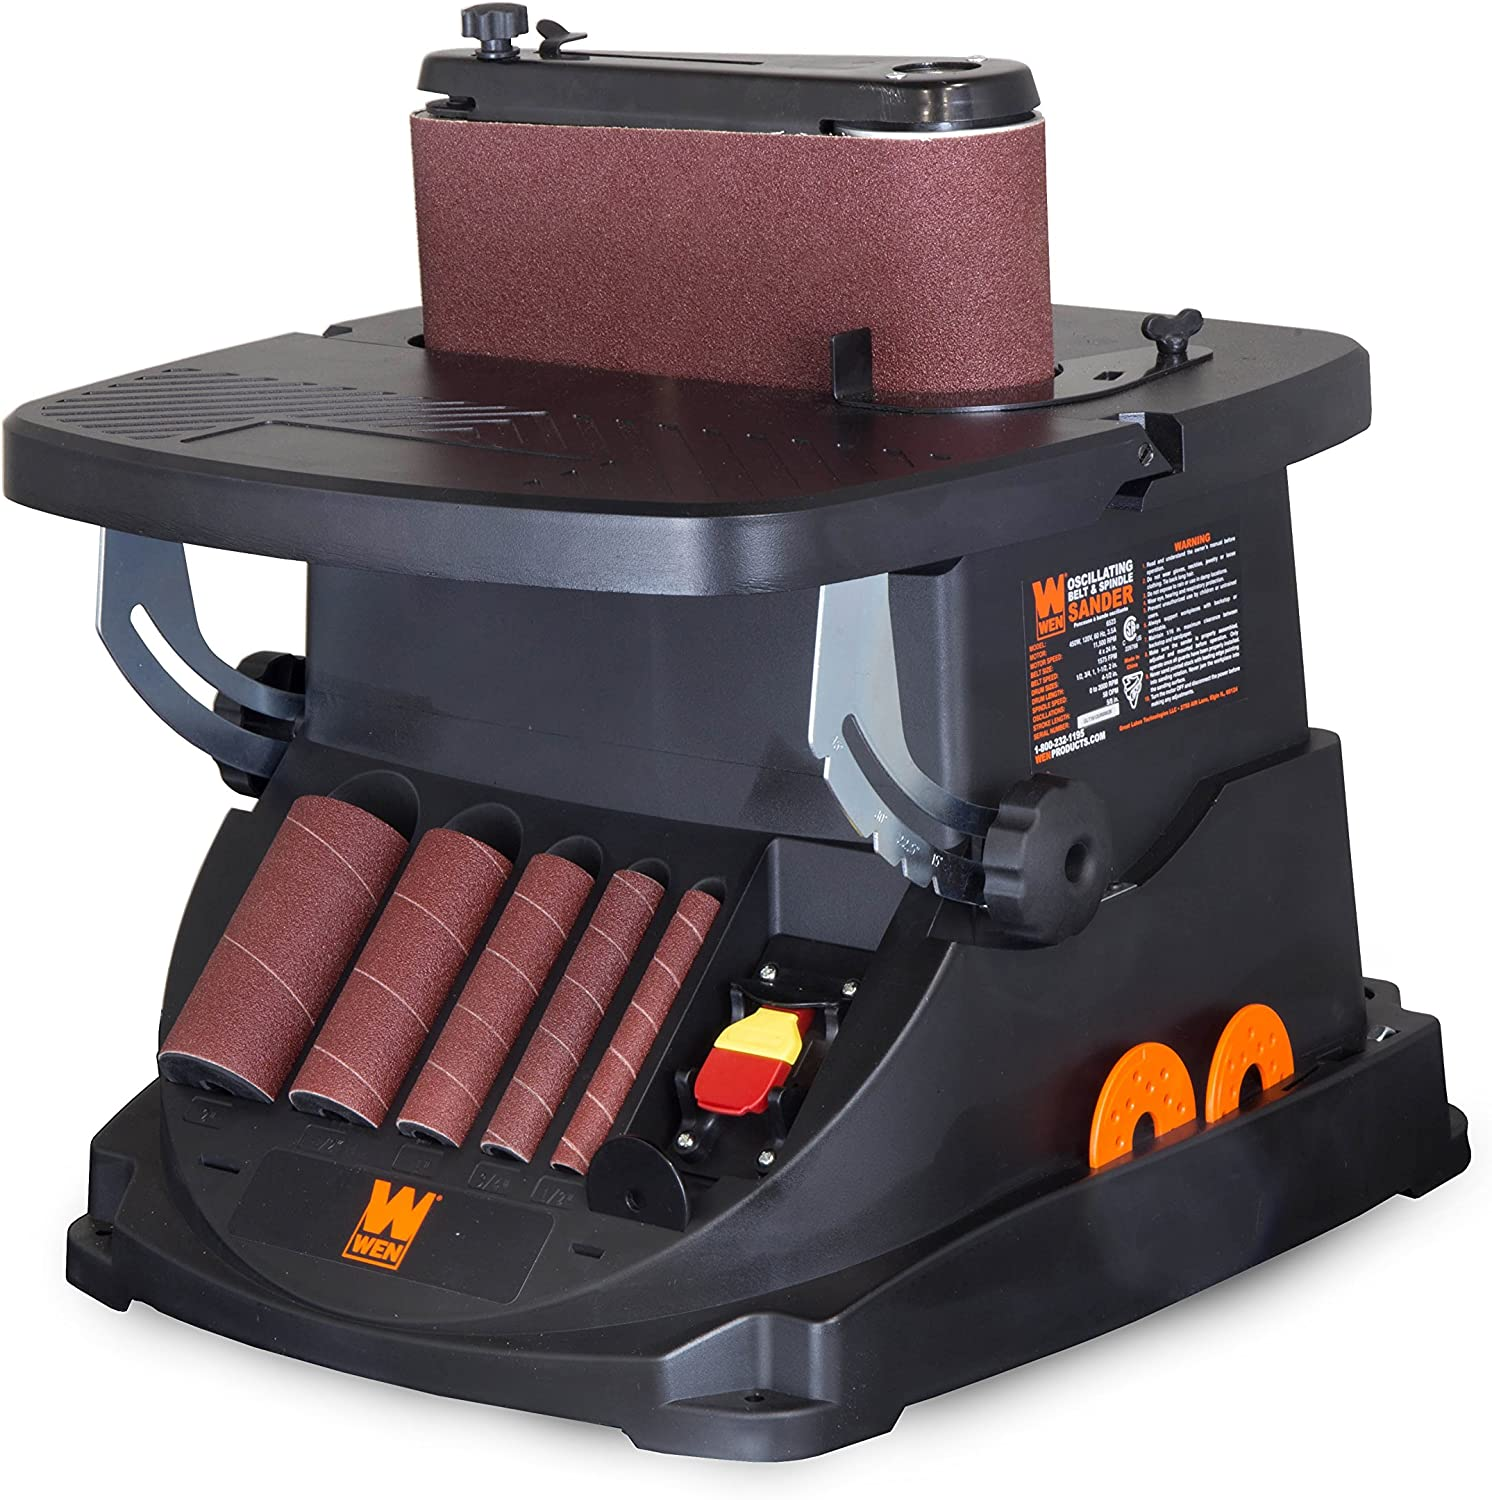 WEN 6524 Oscillating Belt and Spindle Sander